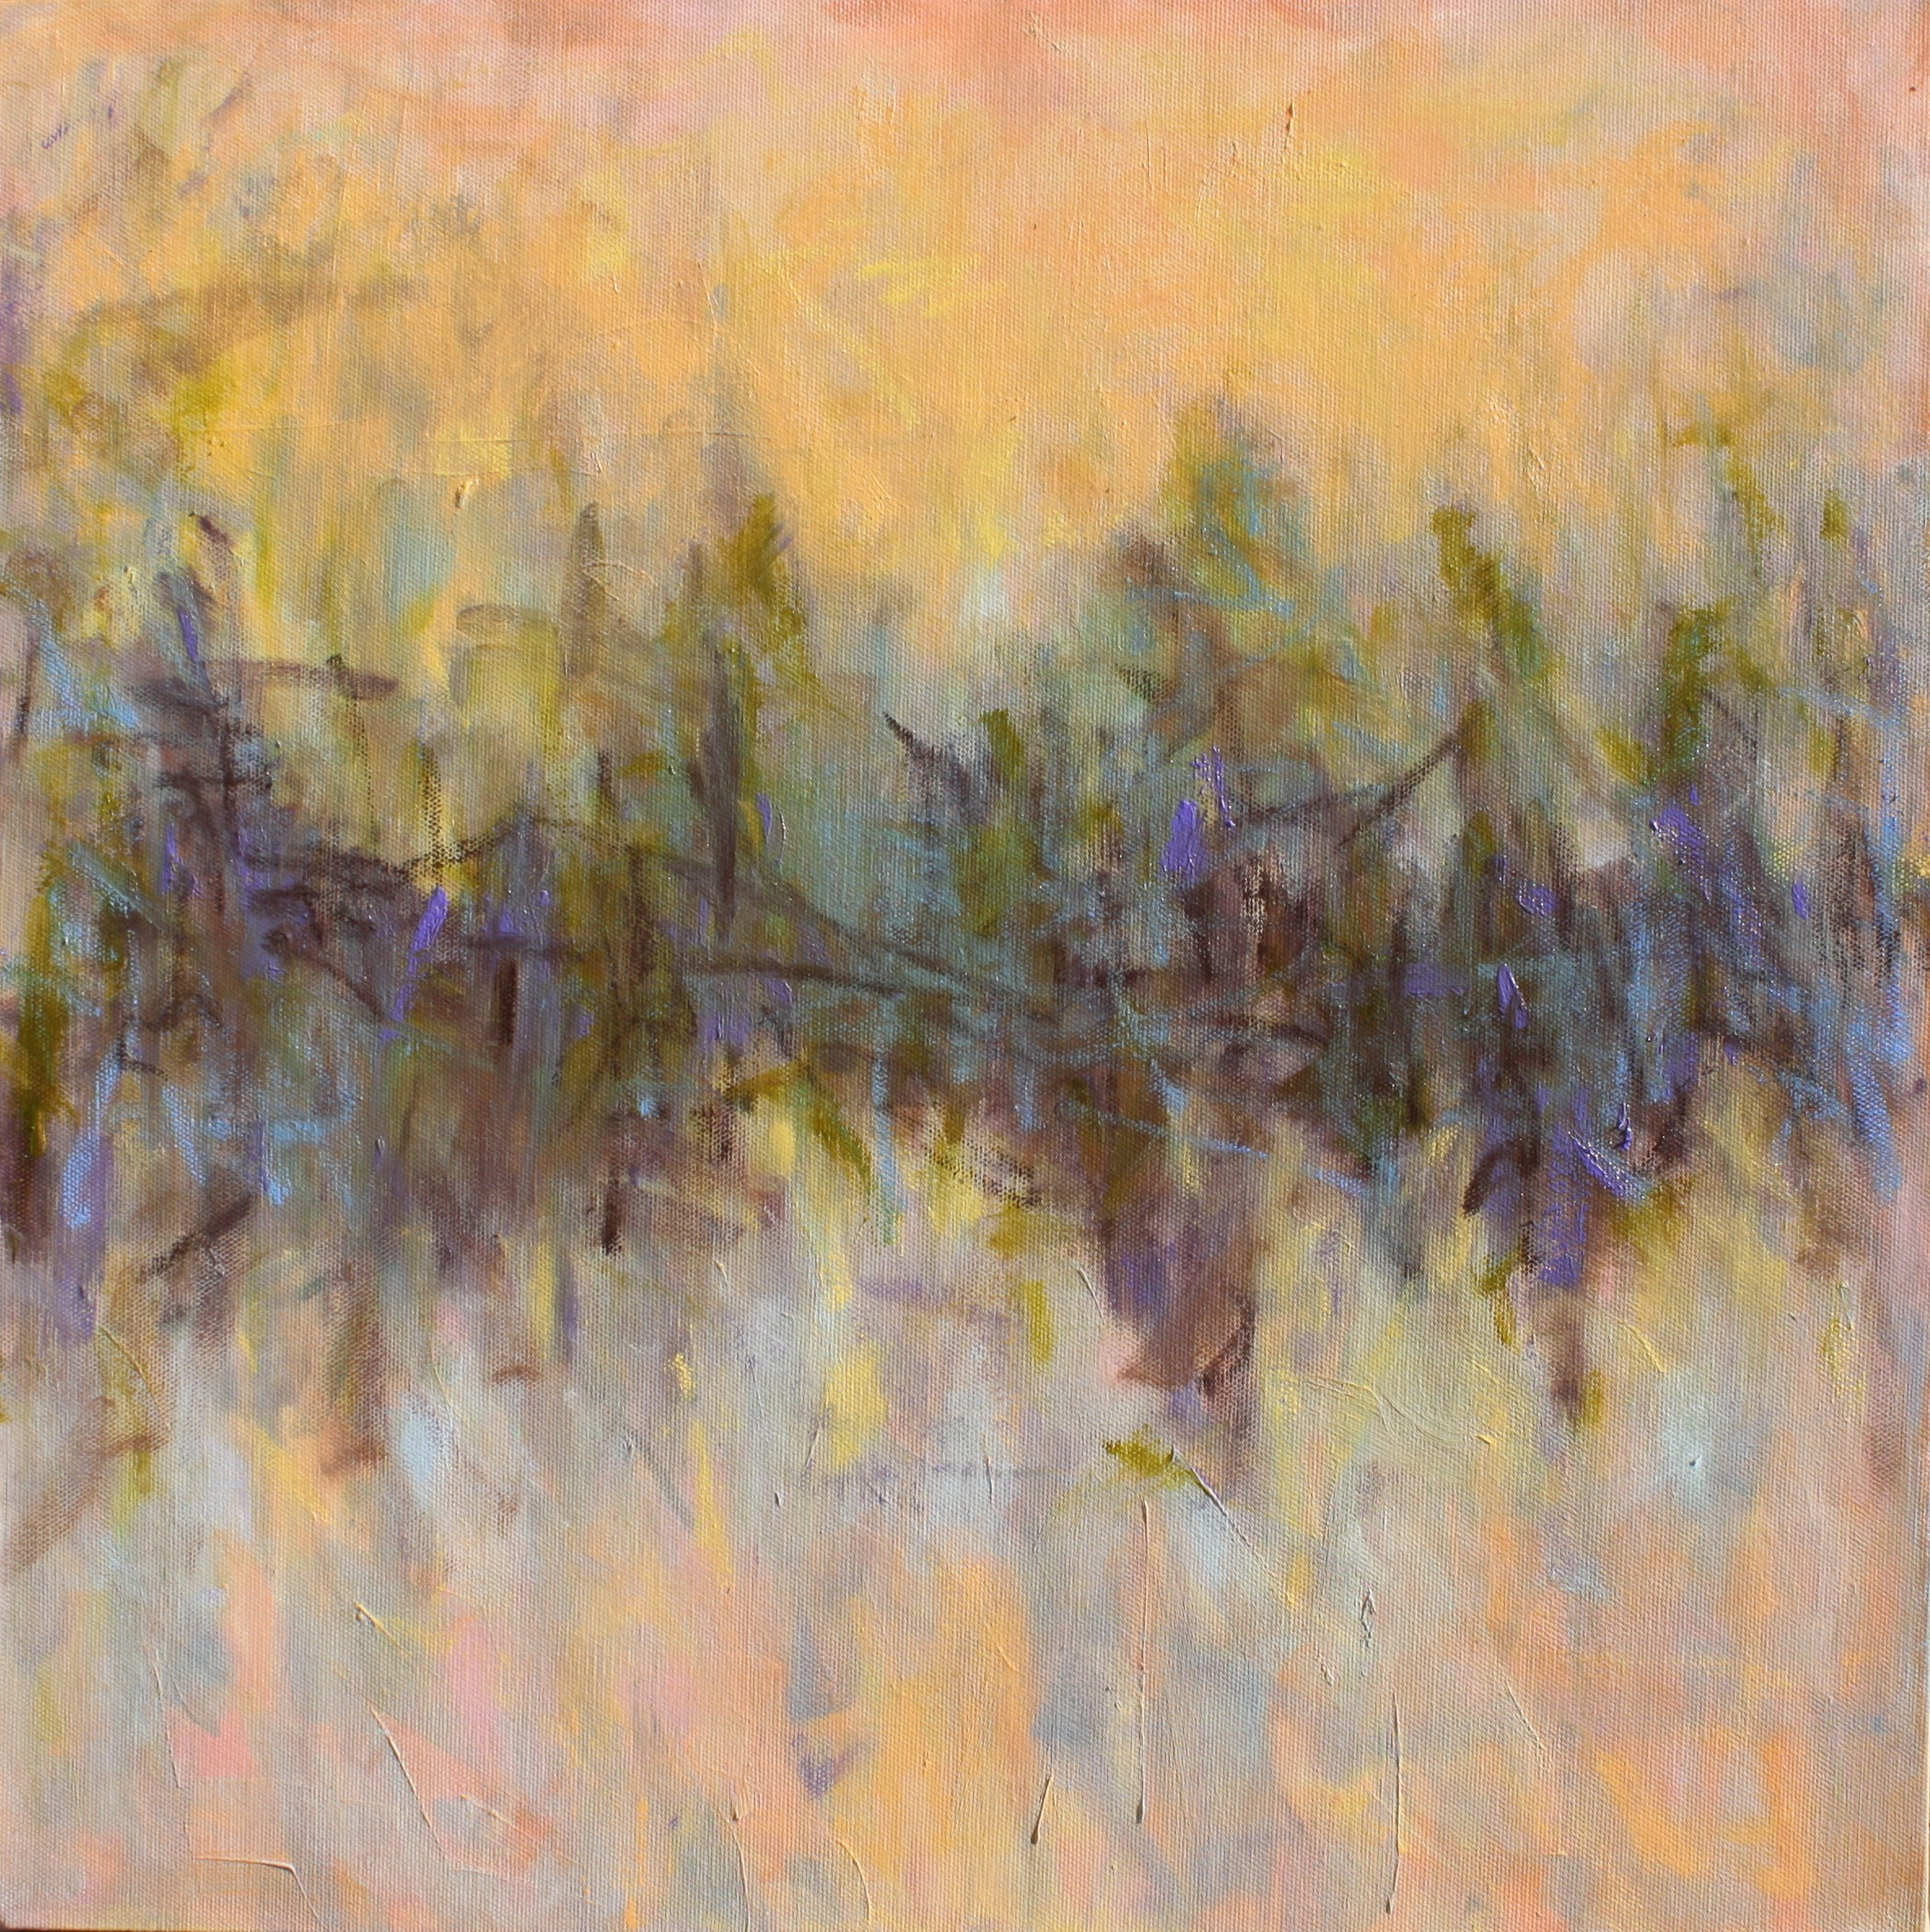 Winter Twilight by Priscilla Whitlock at Les Yeux du Monde Art Gallery